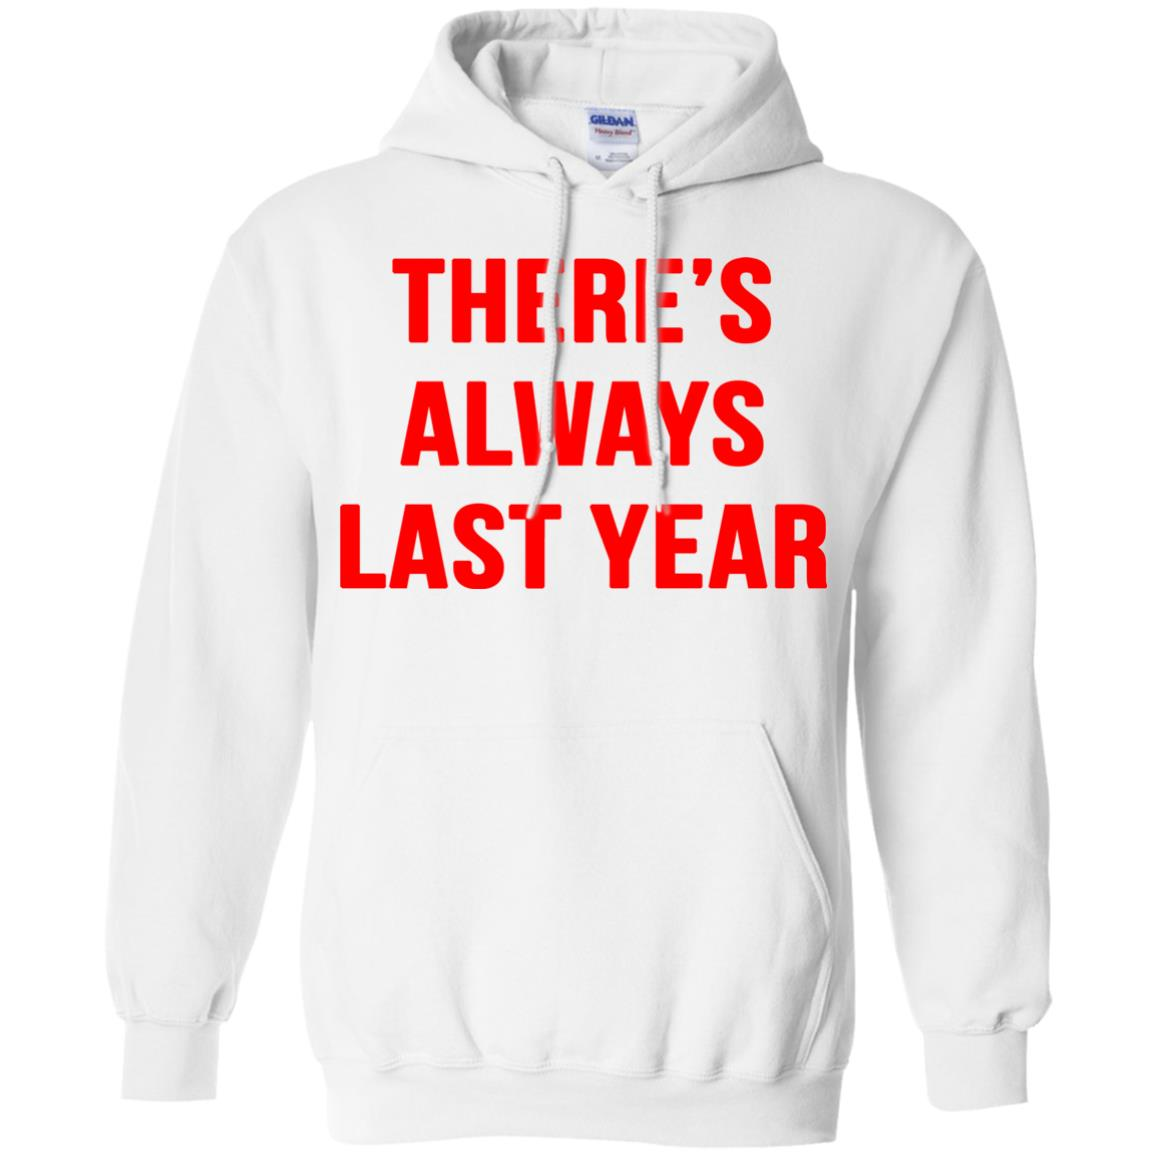 image 1920 - There's always last year t-shirt, long sleeve